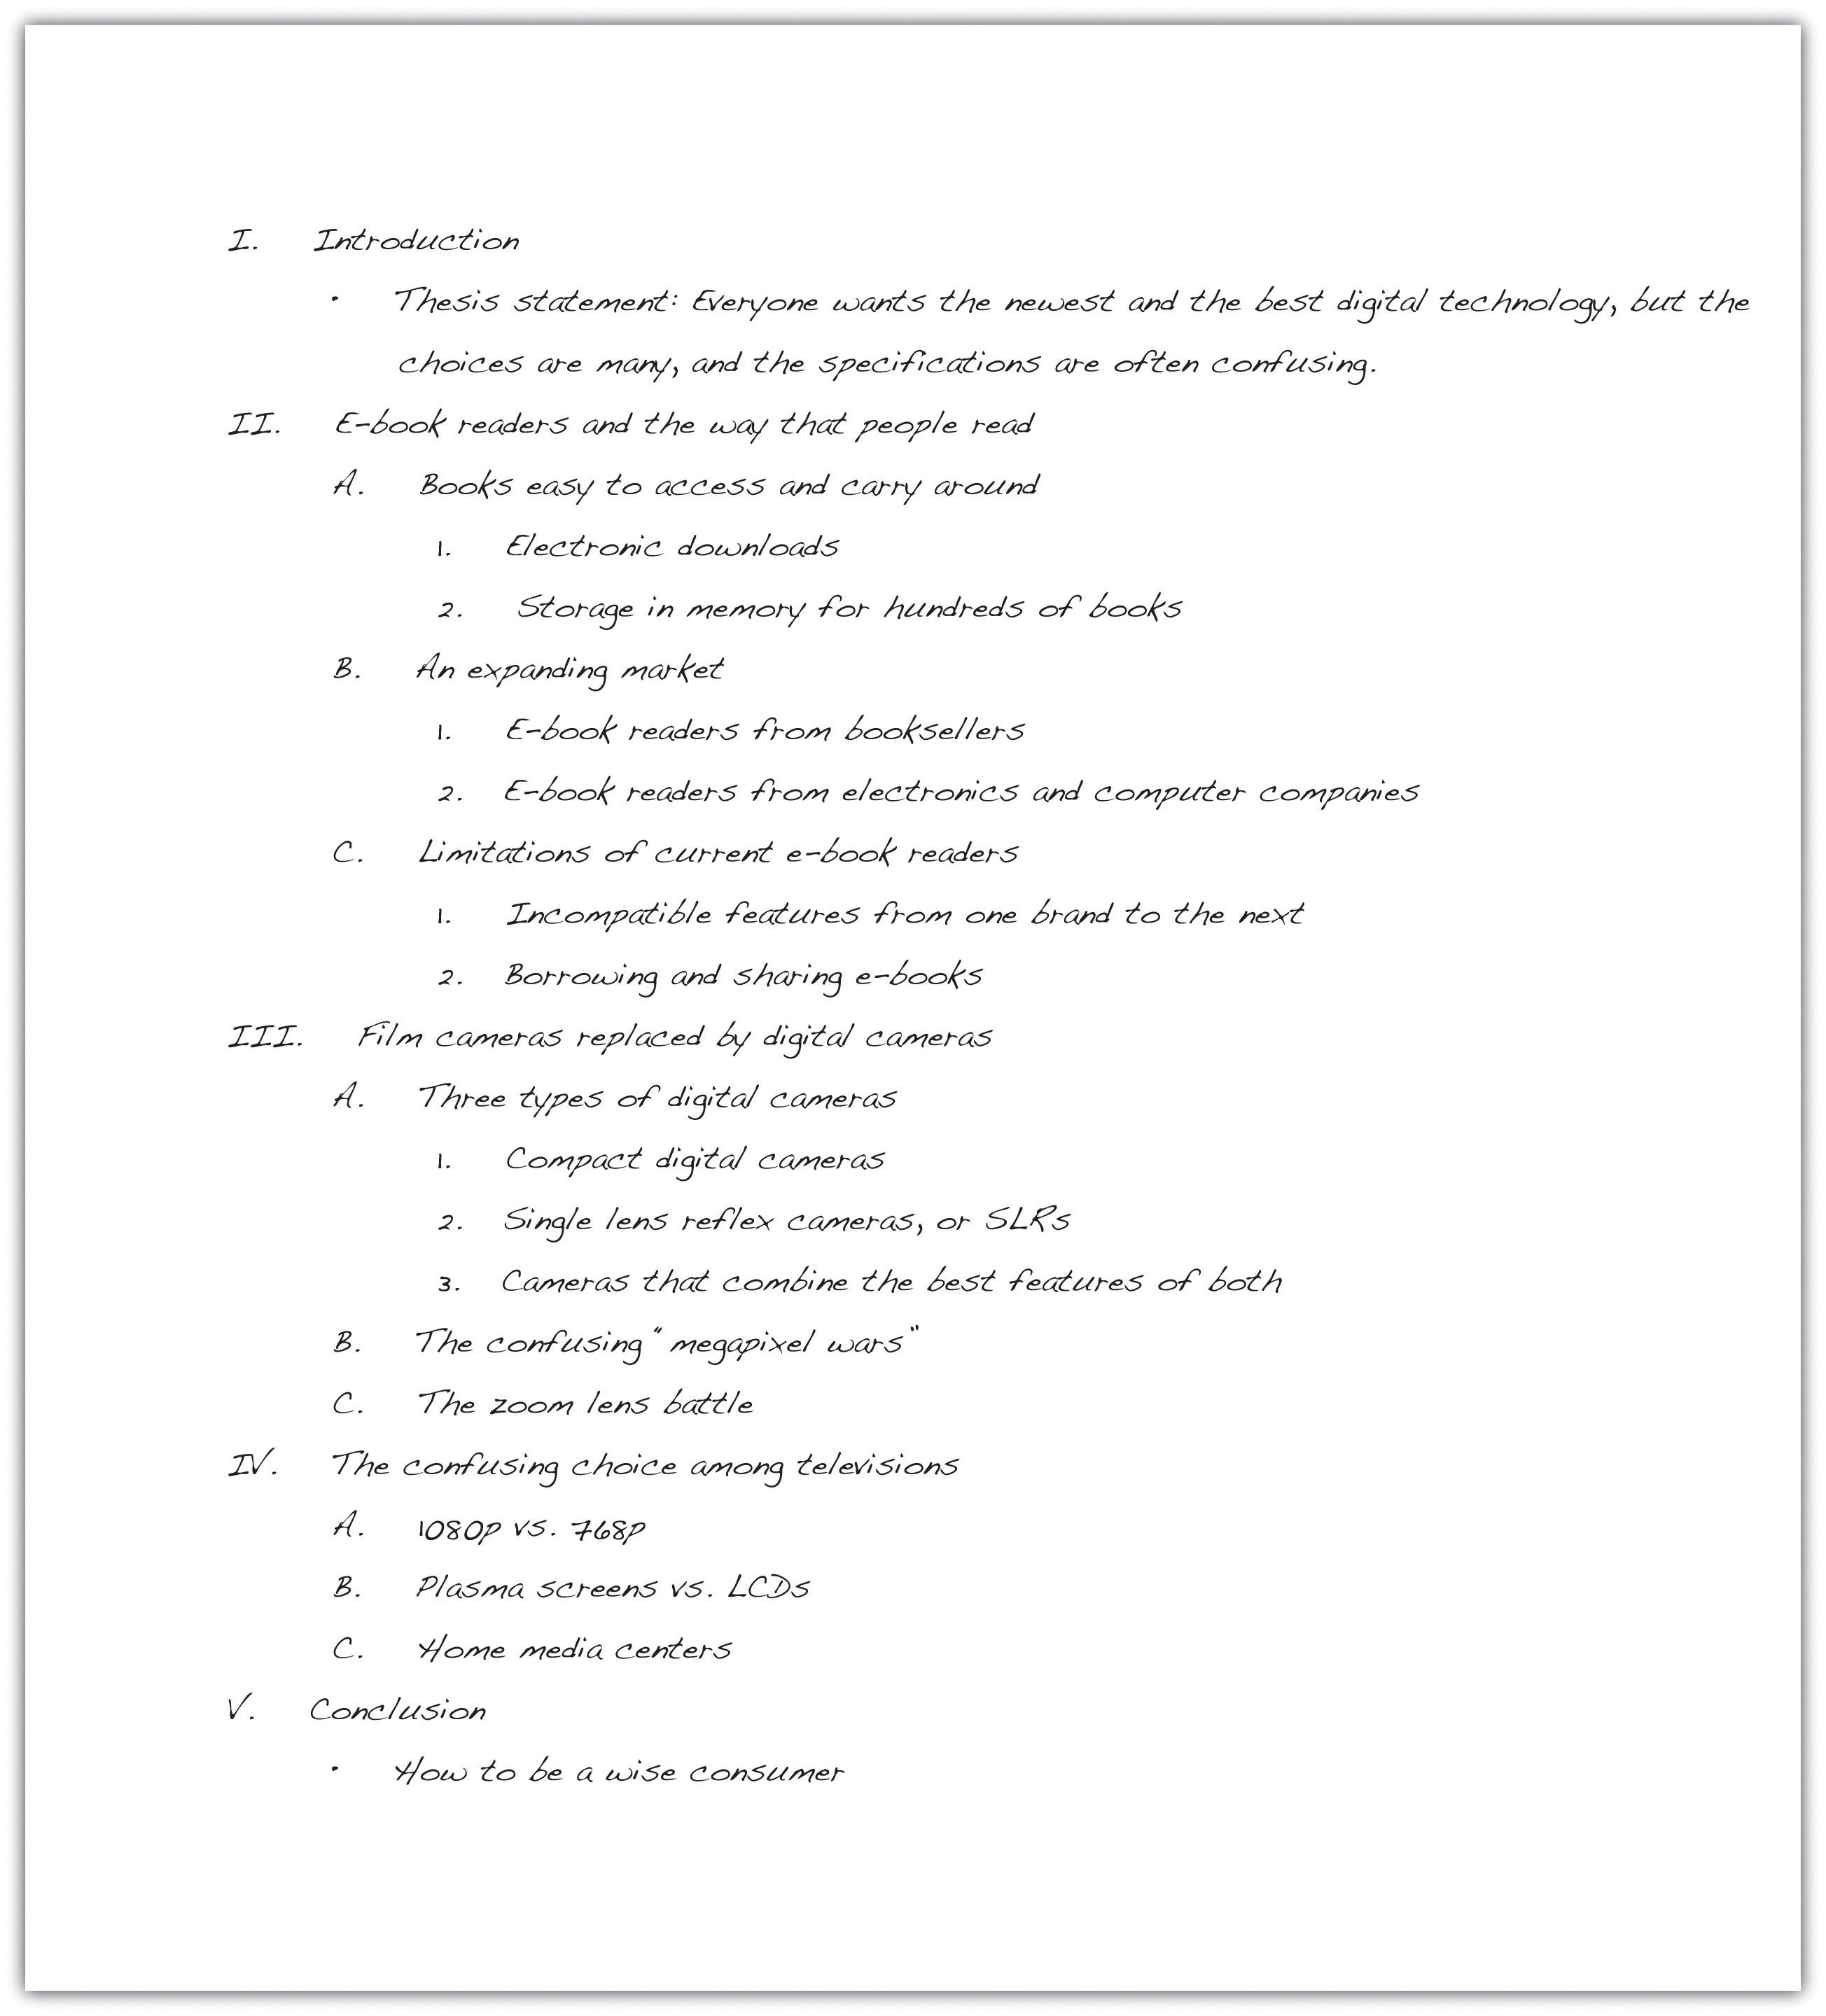 Sample Of Argumentative Essay Writing Outline Of Student Paper Showing Roman Numeral Formatting Followed By A  B C Essay On Family Values also How Do I Write An Outline For An Essay Writing For Success Outlining  English  Exposition And  Example Of A Descriptive Essay About A Person